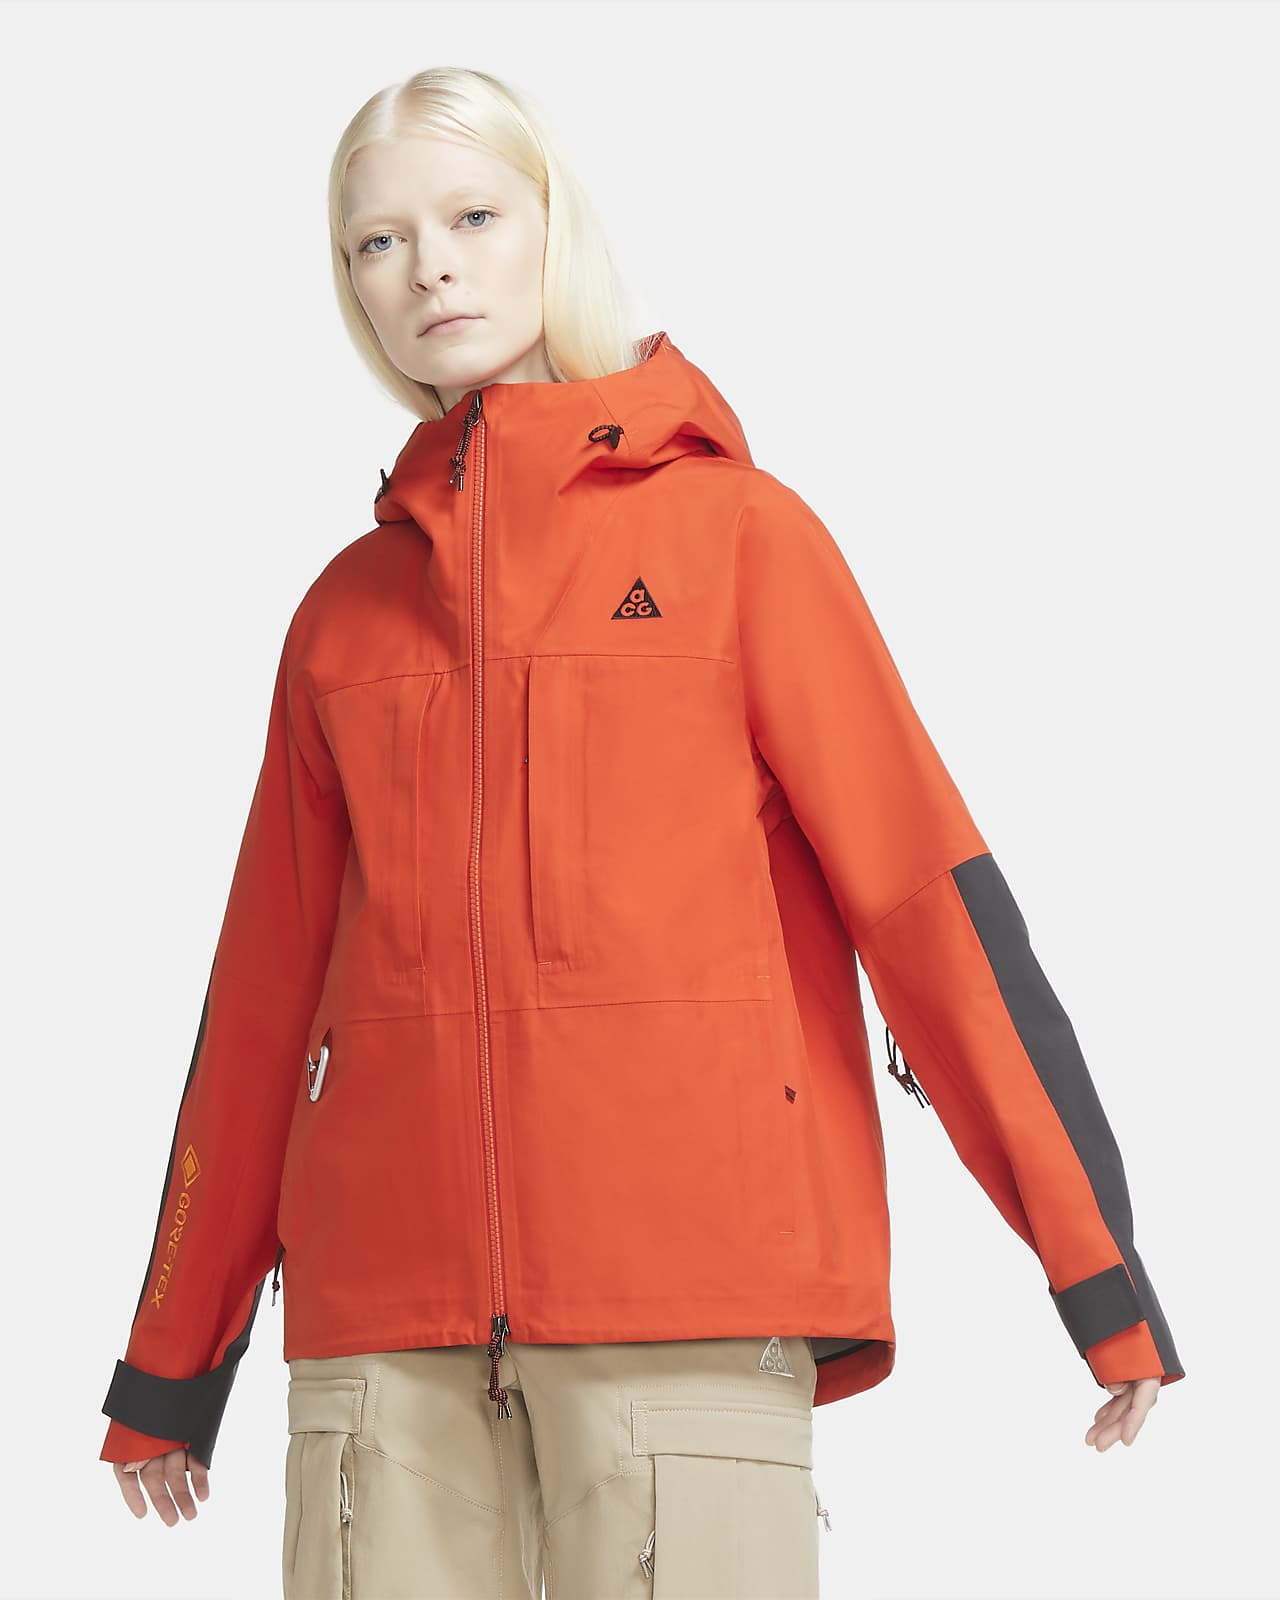 Nike ACG GORE-TEX 'Misery Ridge' Women's Jacket